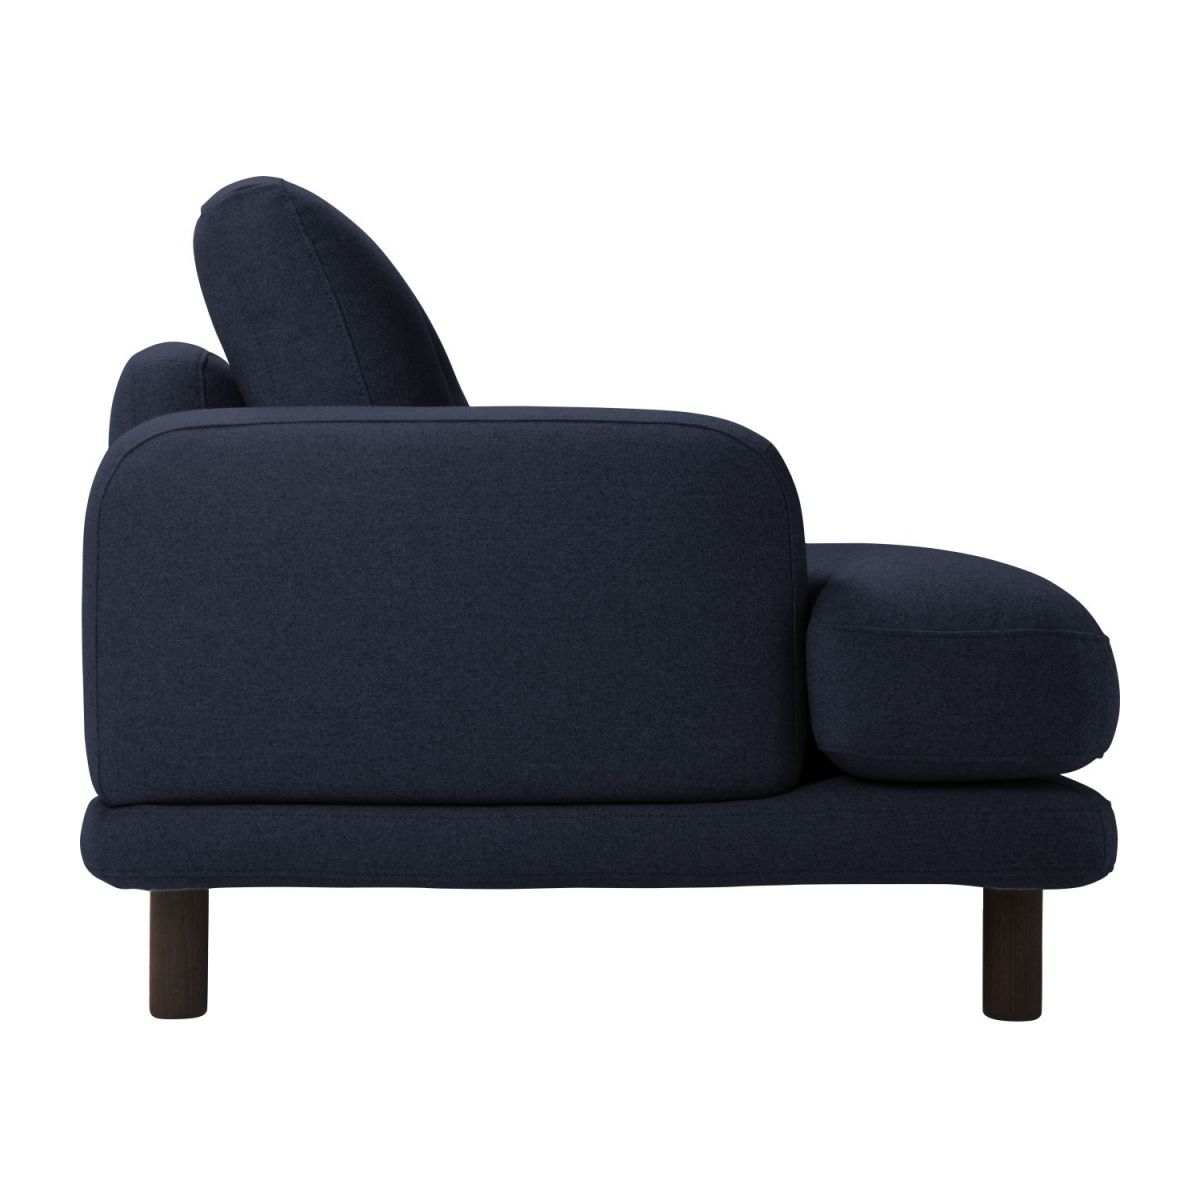 3-seater sofa in wool felt n°4